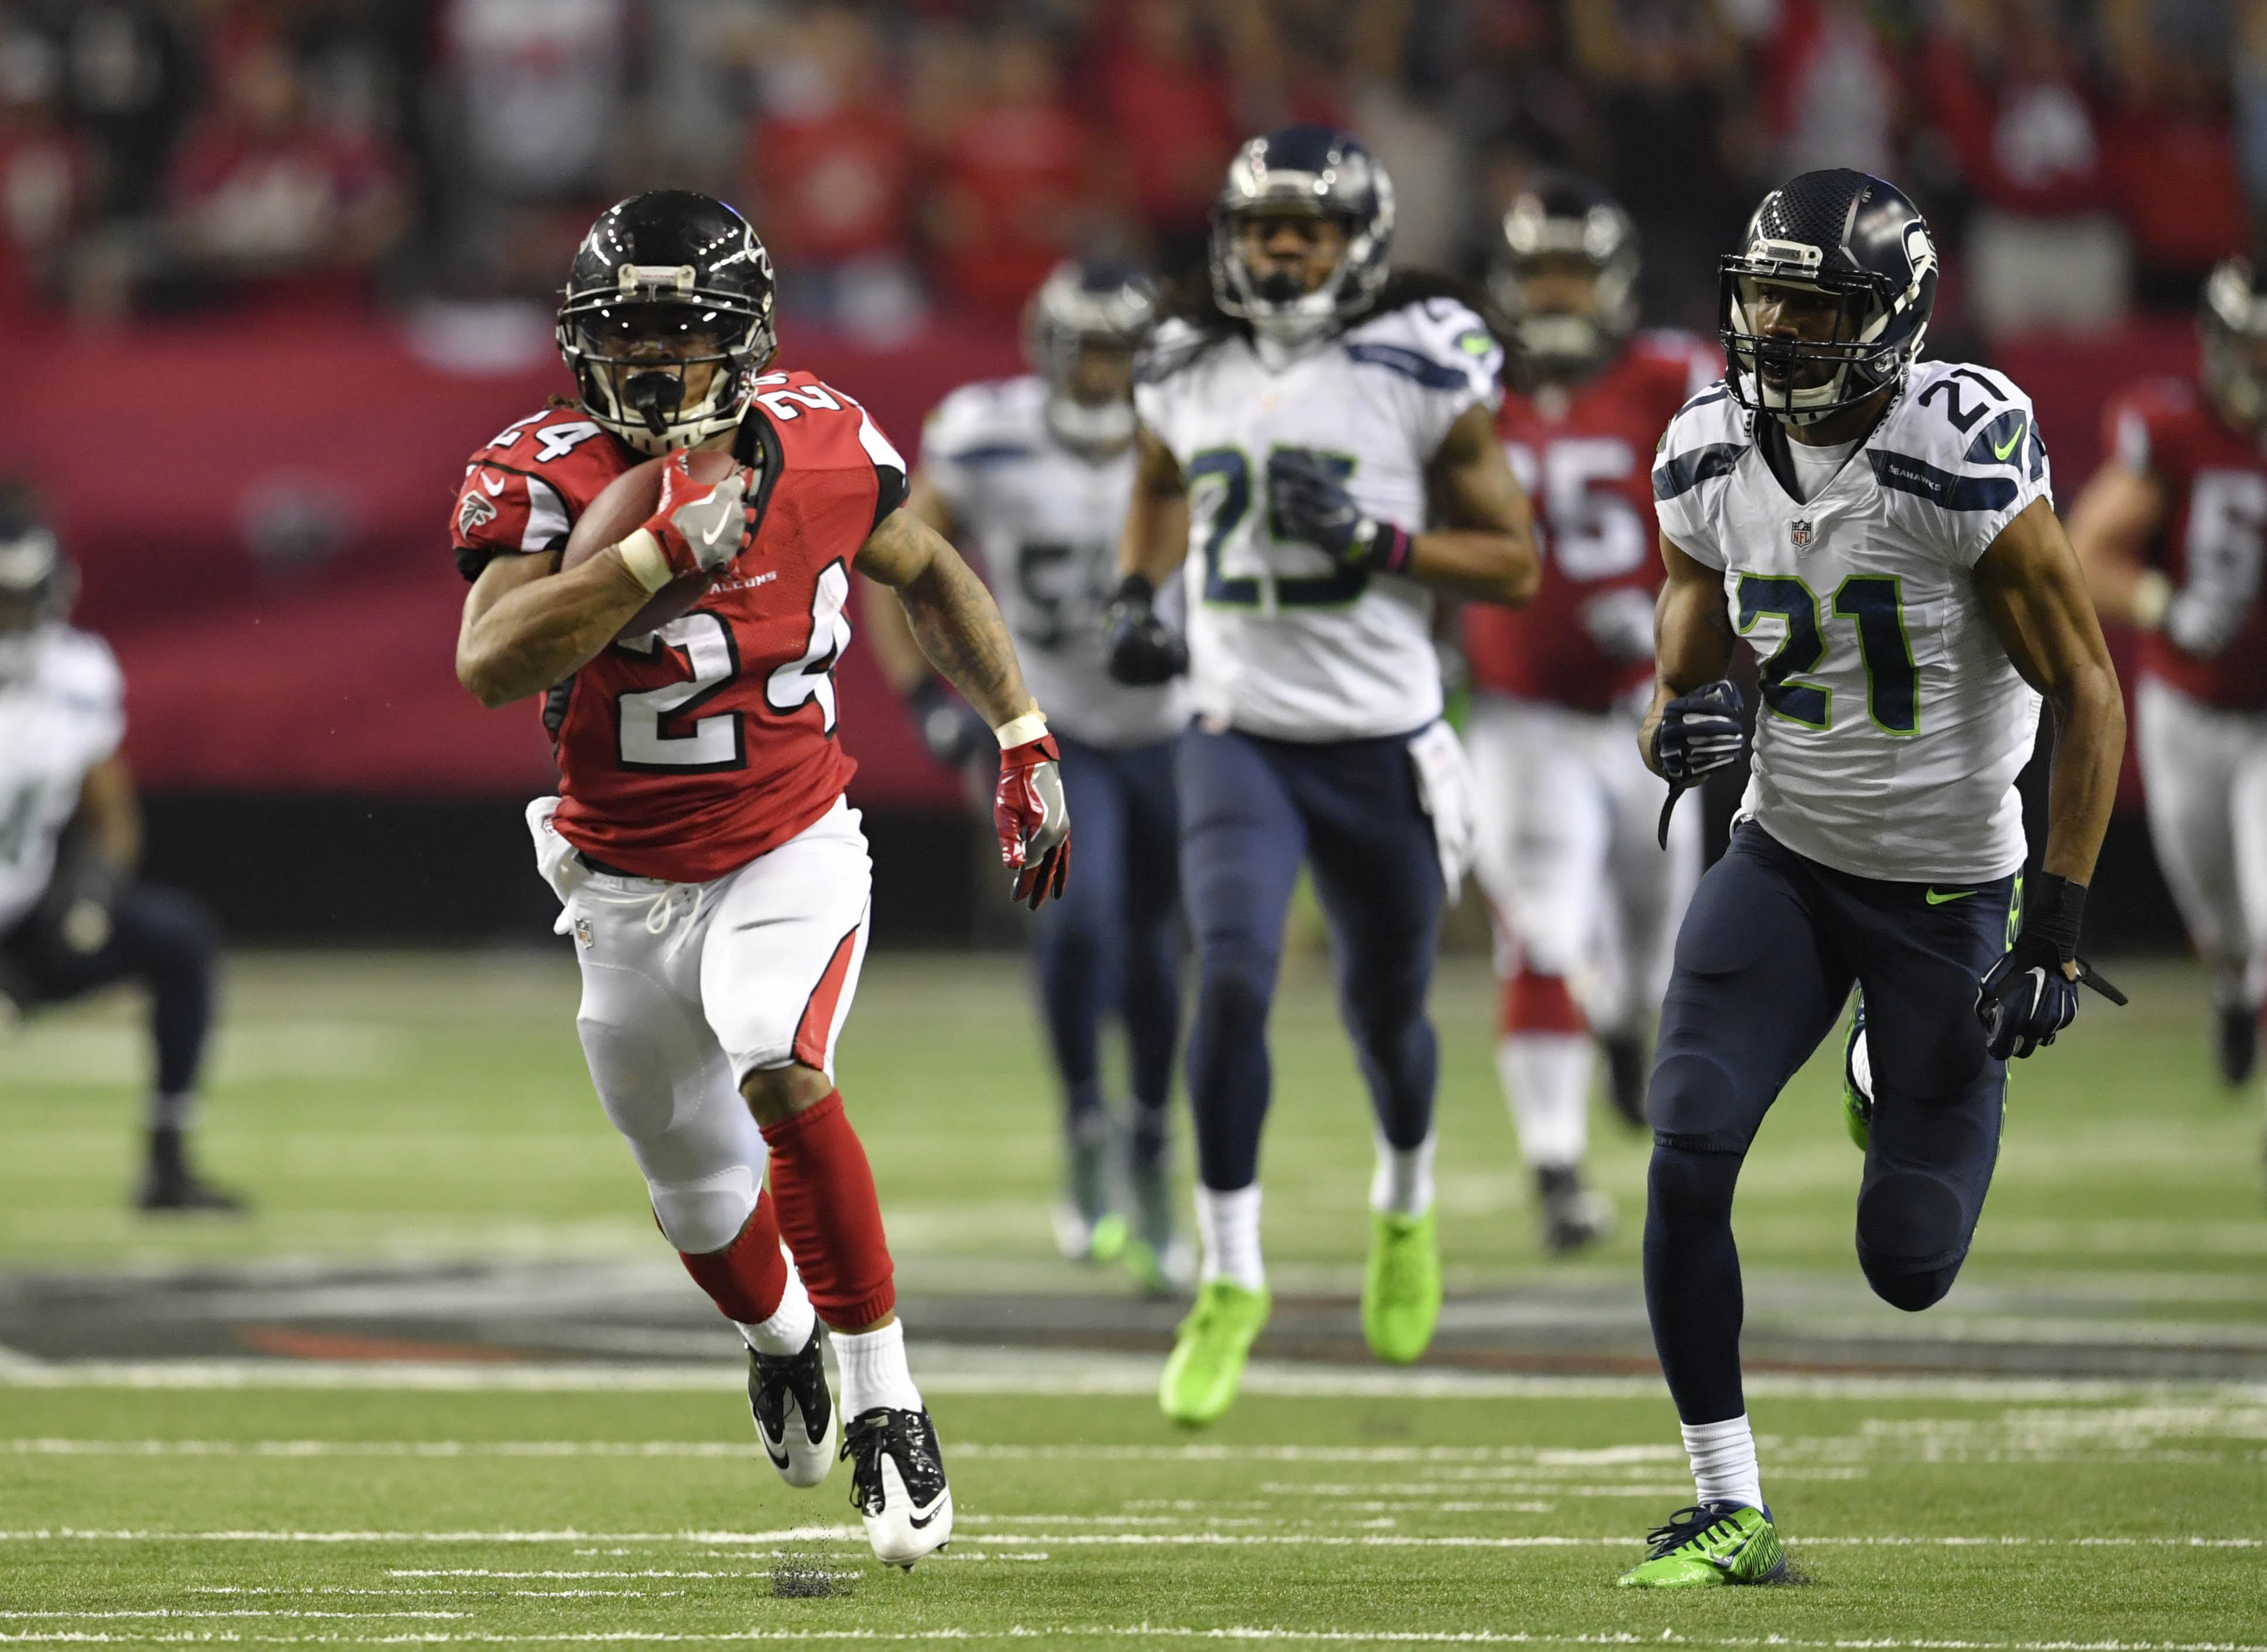 9810438-nfl-nfc-divisional-seattle-seahawks-at-atlanta-falcons